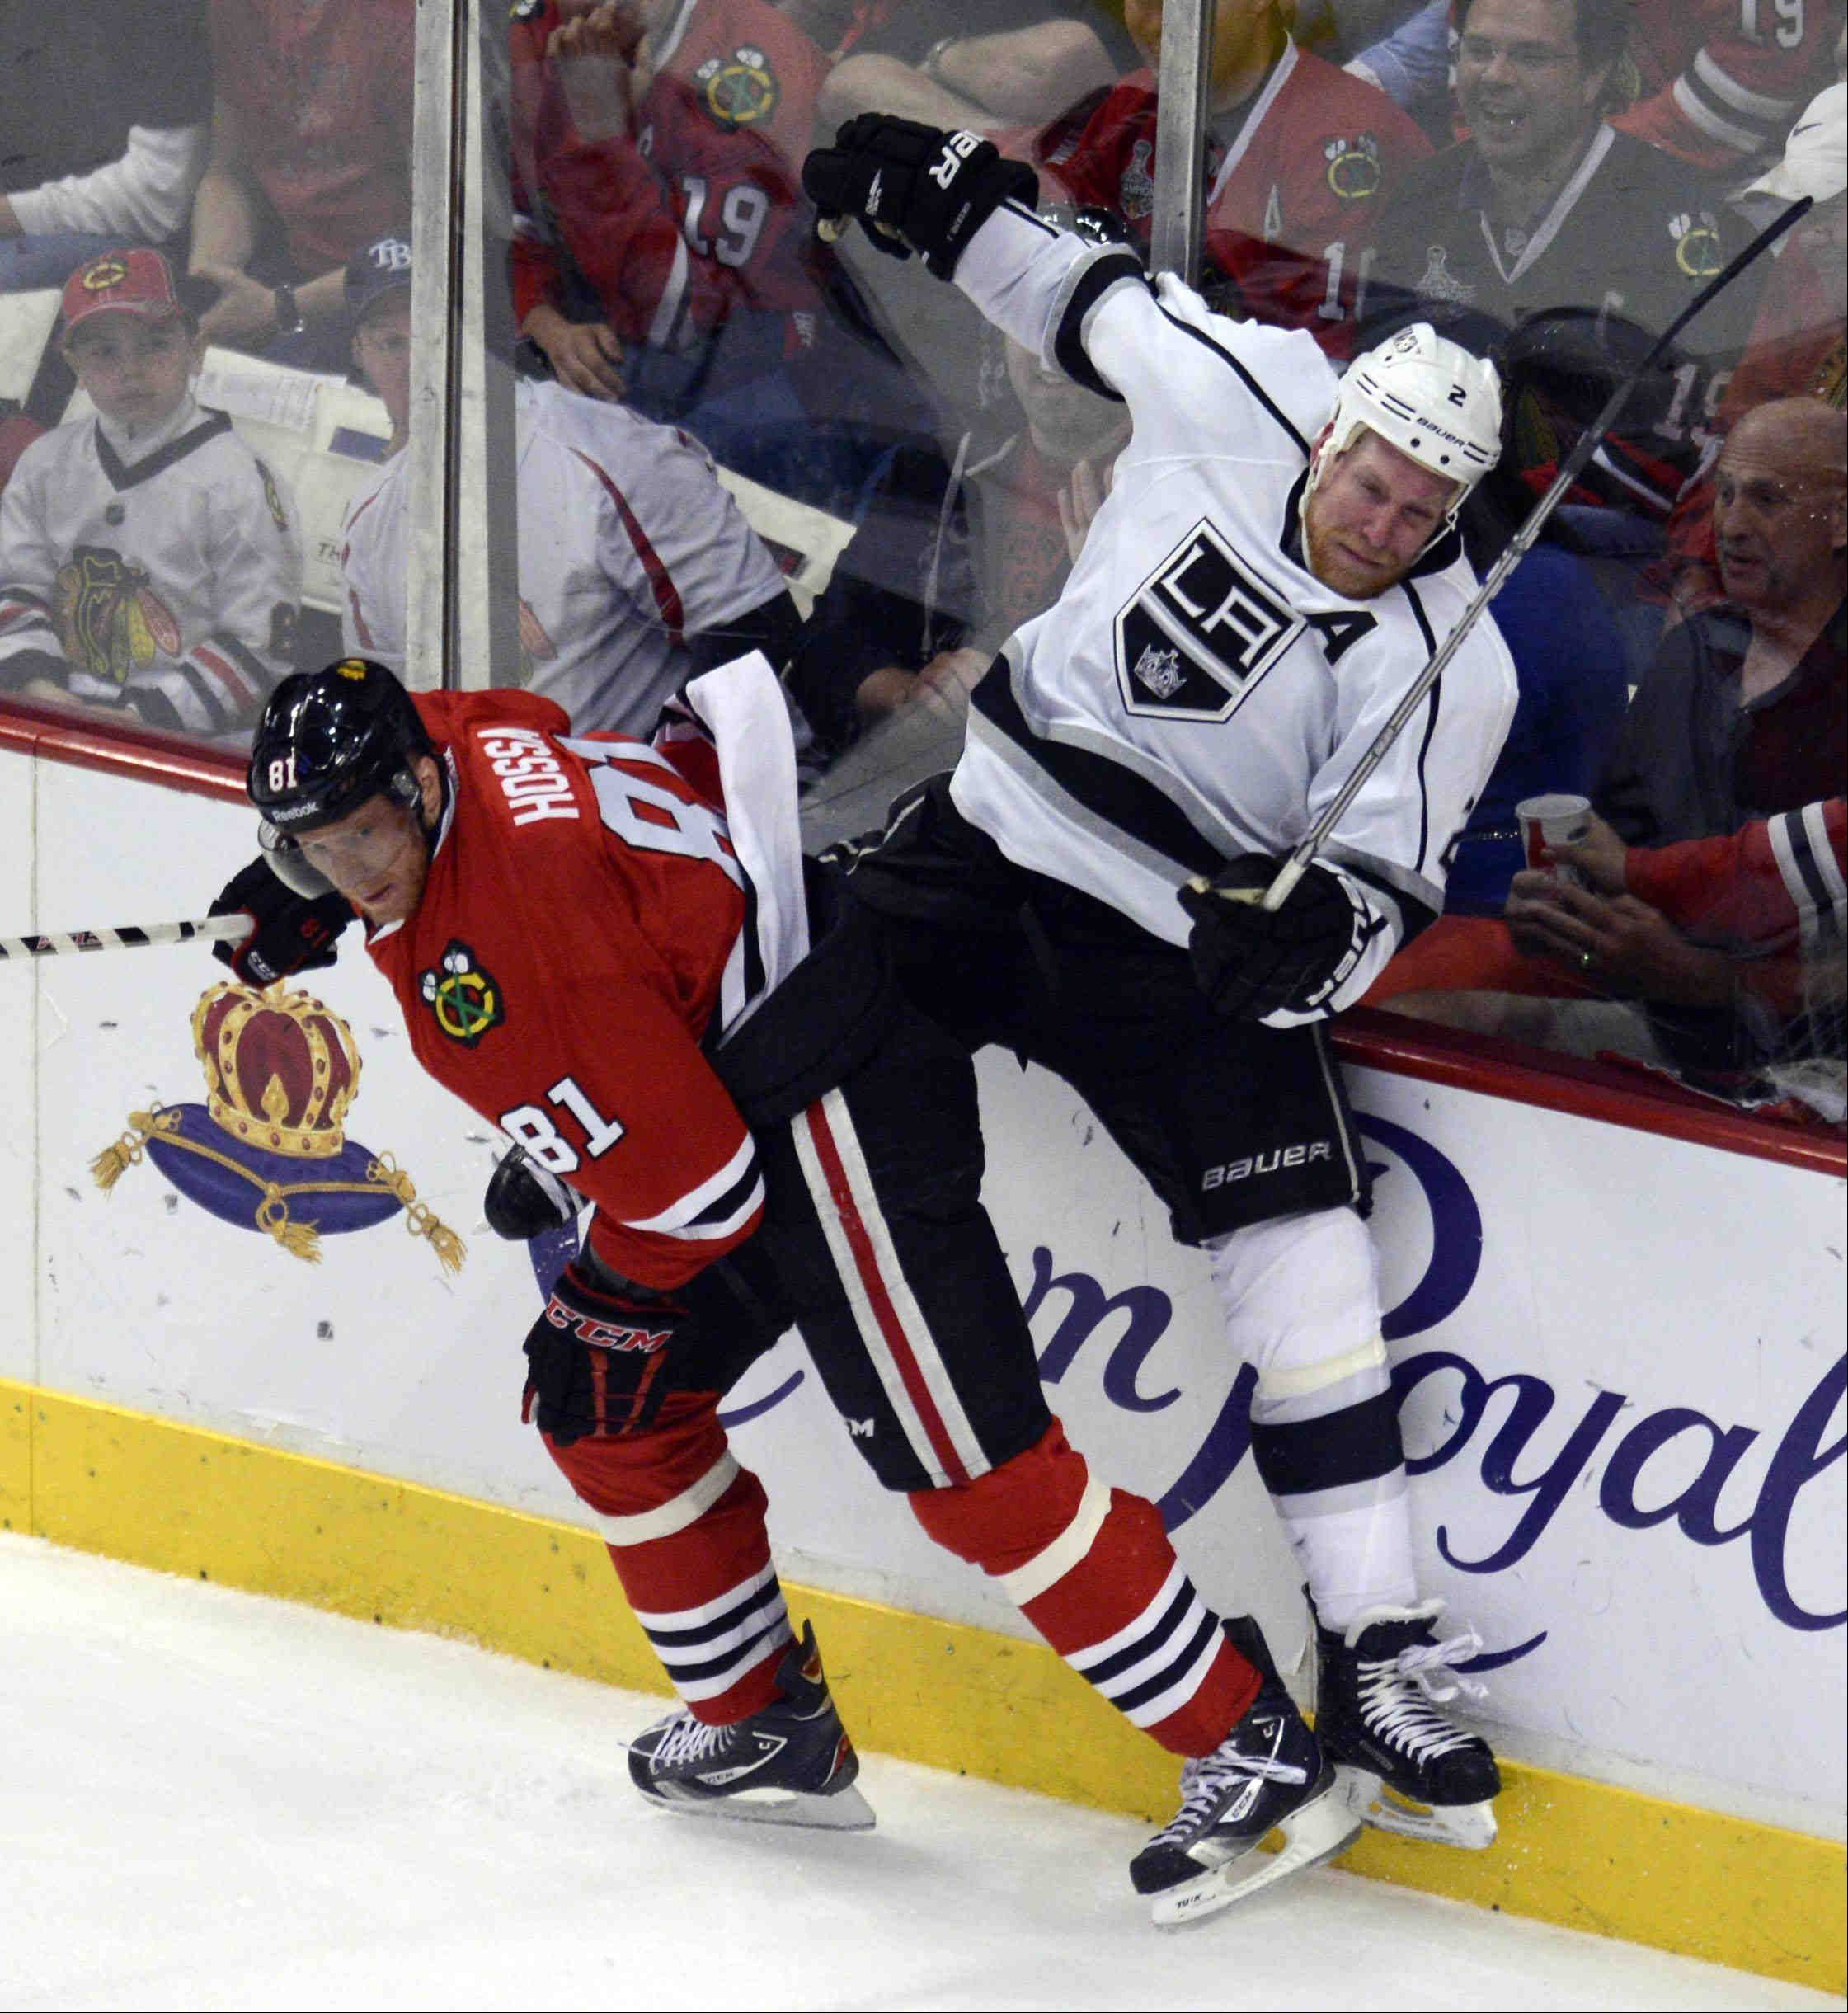 Chicago Blackhawks right wing Marian Hossa checks Los Angeles Kings defenseman Matt Greene into the boards Saturday during the NHL Western Conference Finals Game 5 at the United Center in Chicago.